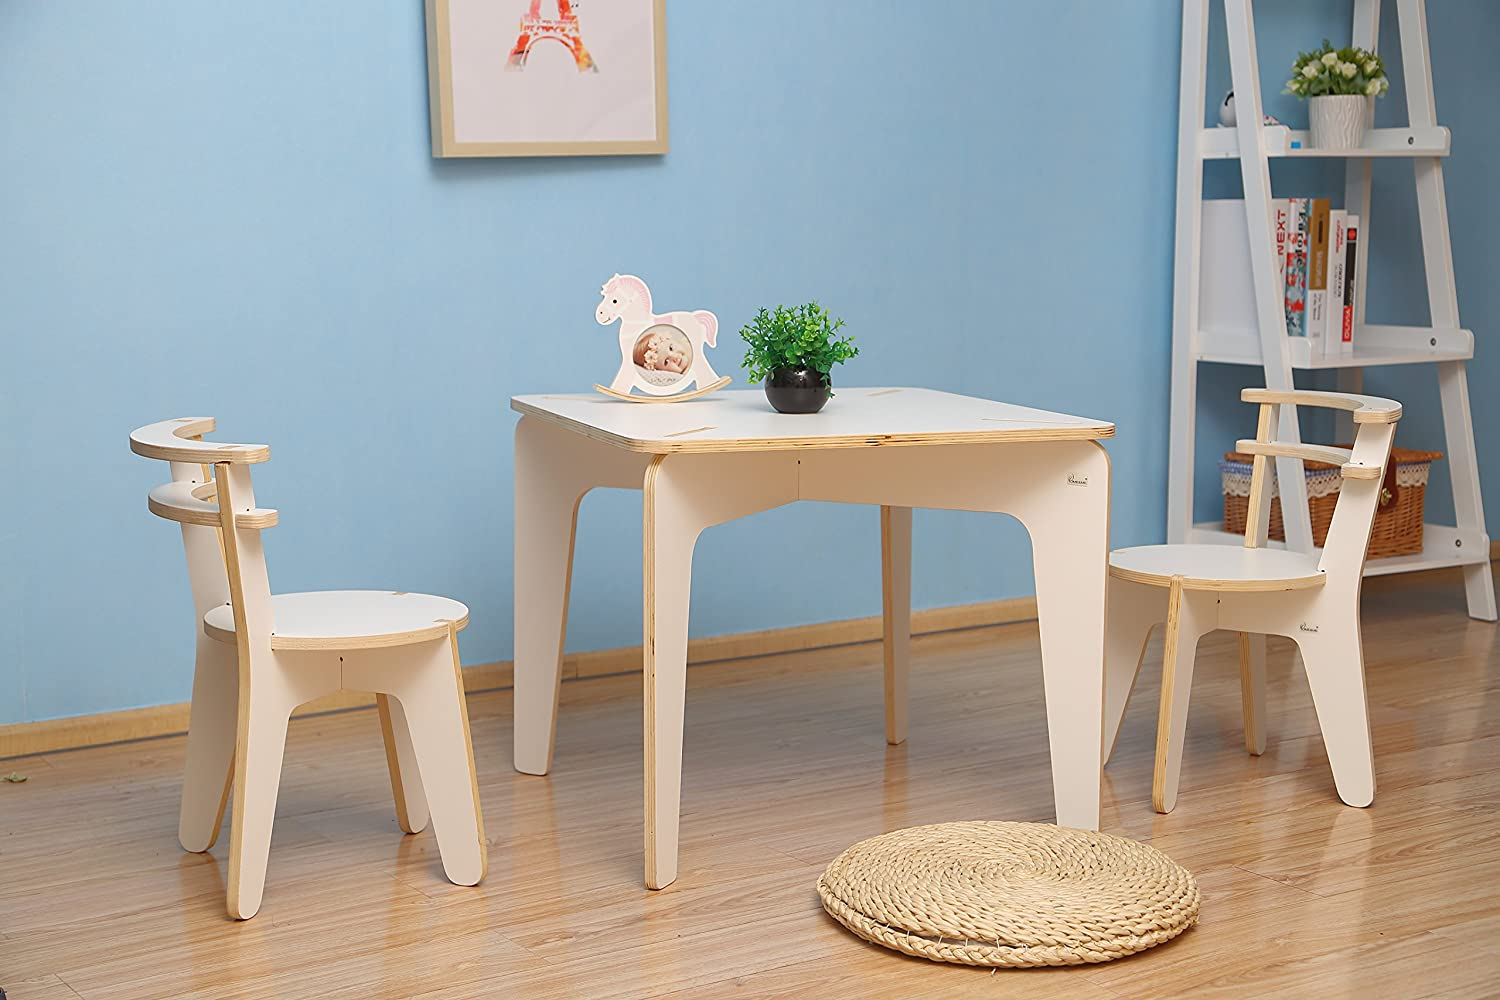 Amazon.com: Kids Wooden Table and Chair Set - Baby Activity ...